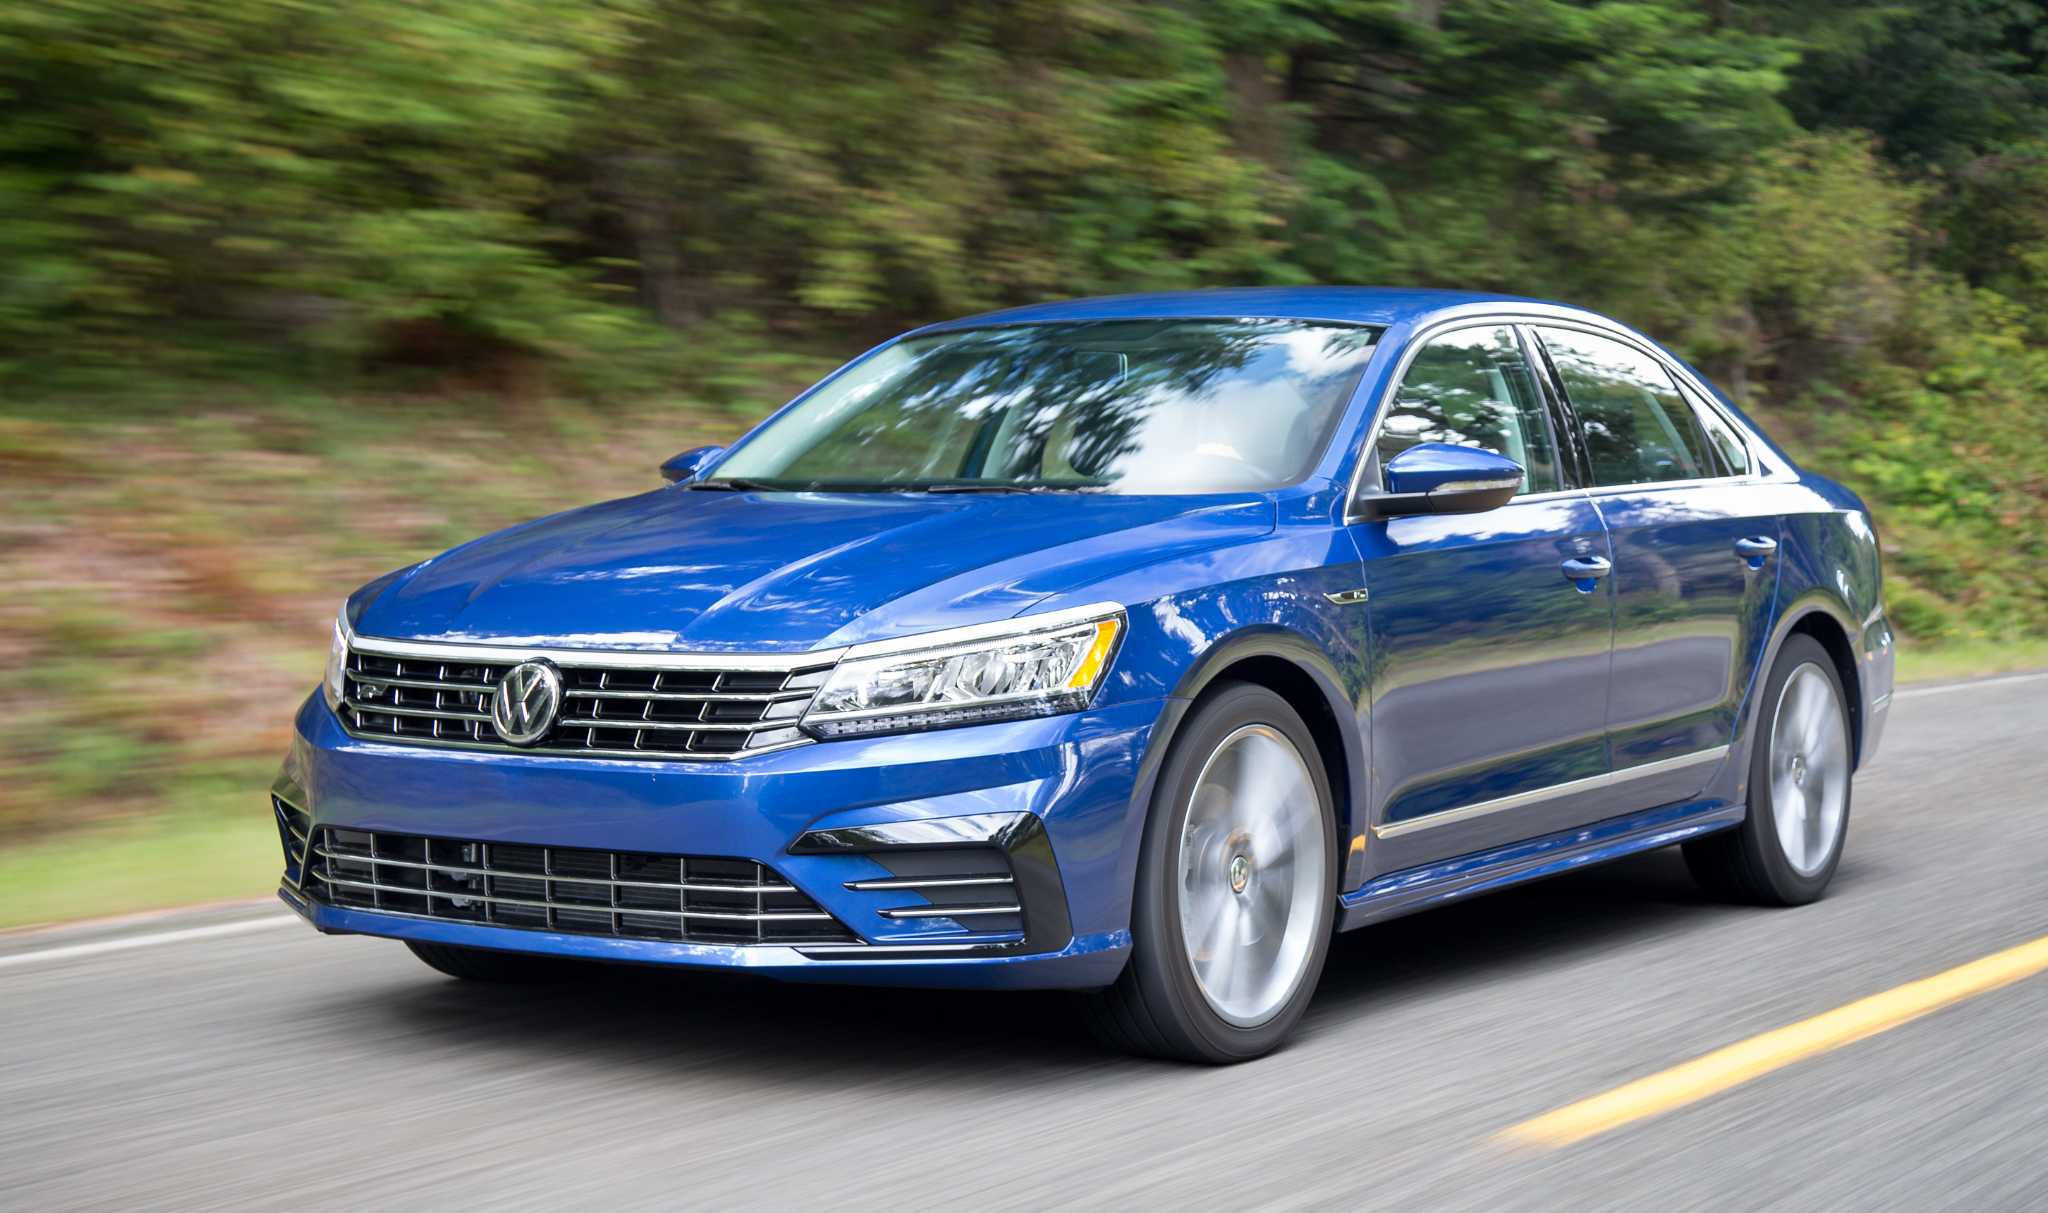 Shock therapy: VW's Passat bristles with tech, value